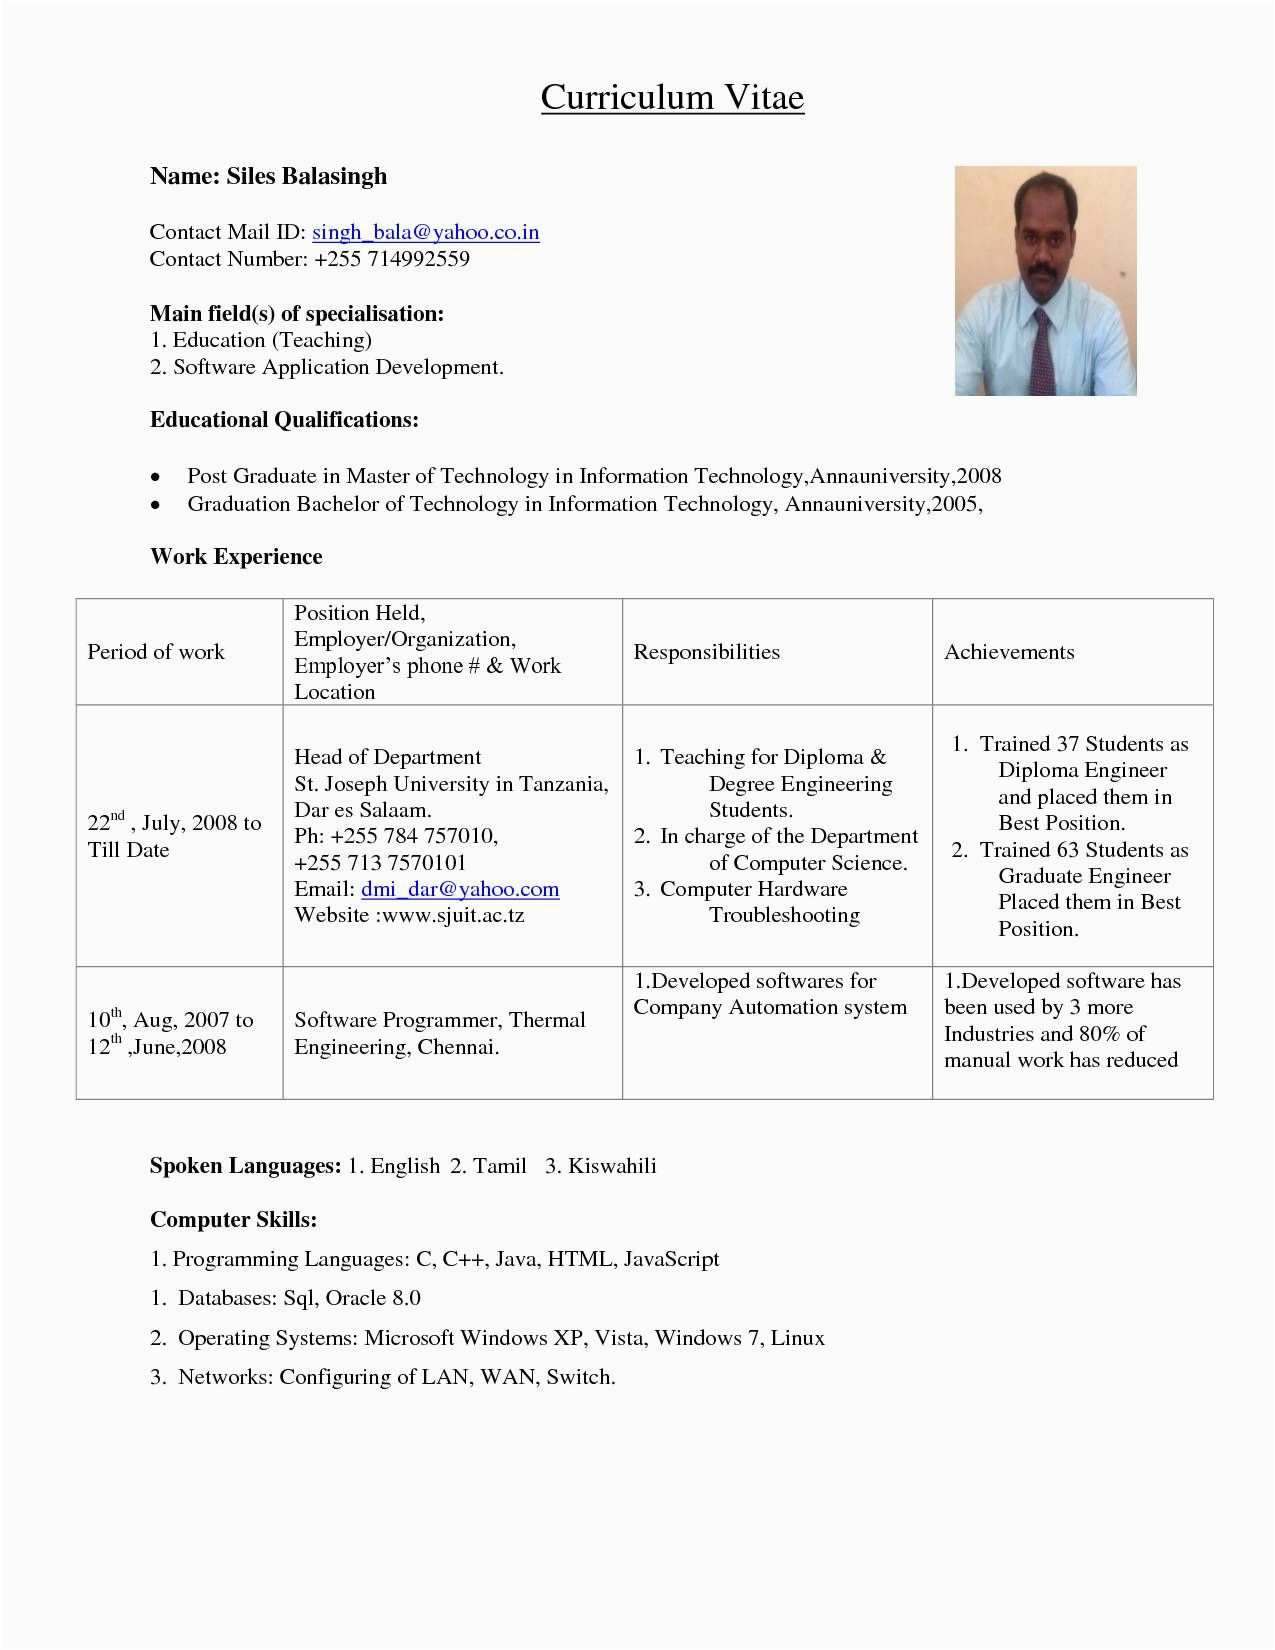 Sample Resume for assistant Professor In Civil Engineering Resume format for Lecturer Job In Engineering College